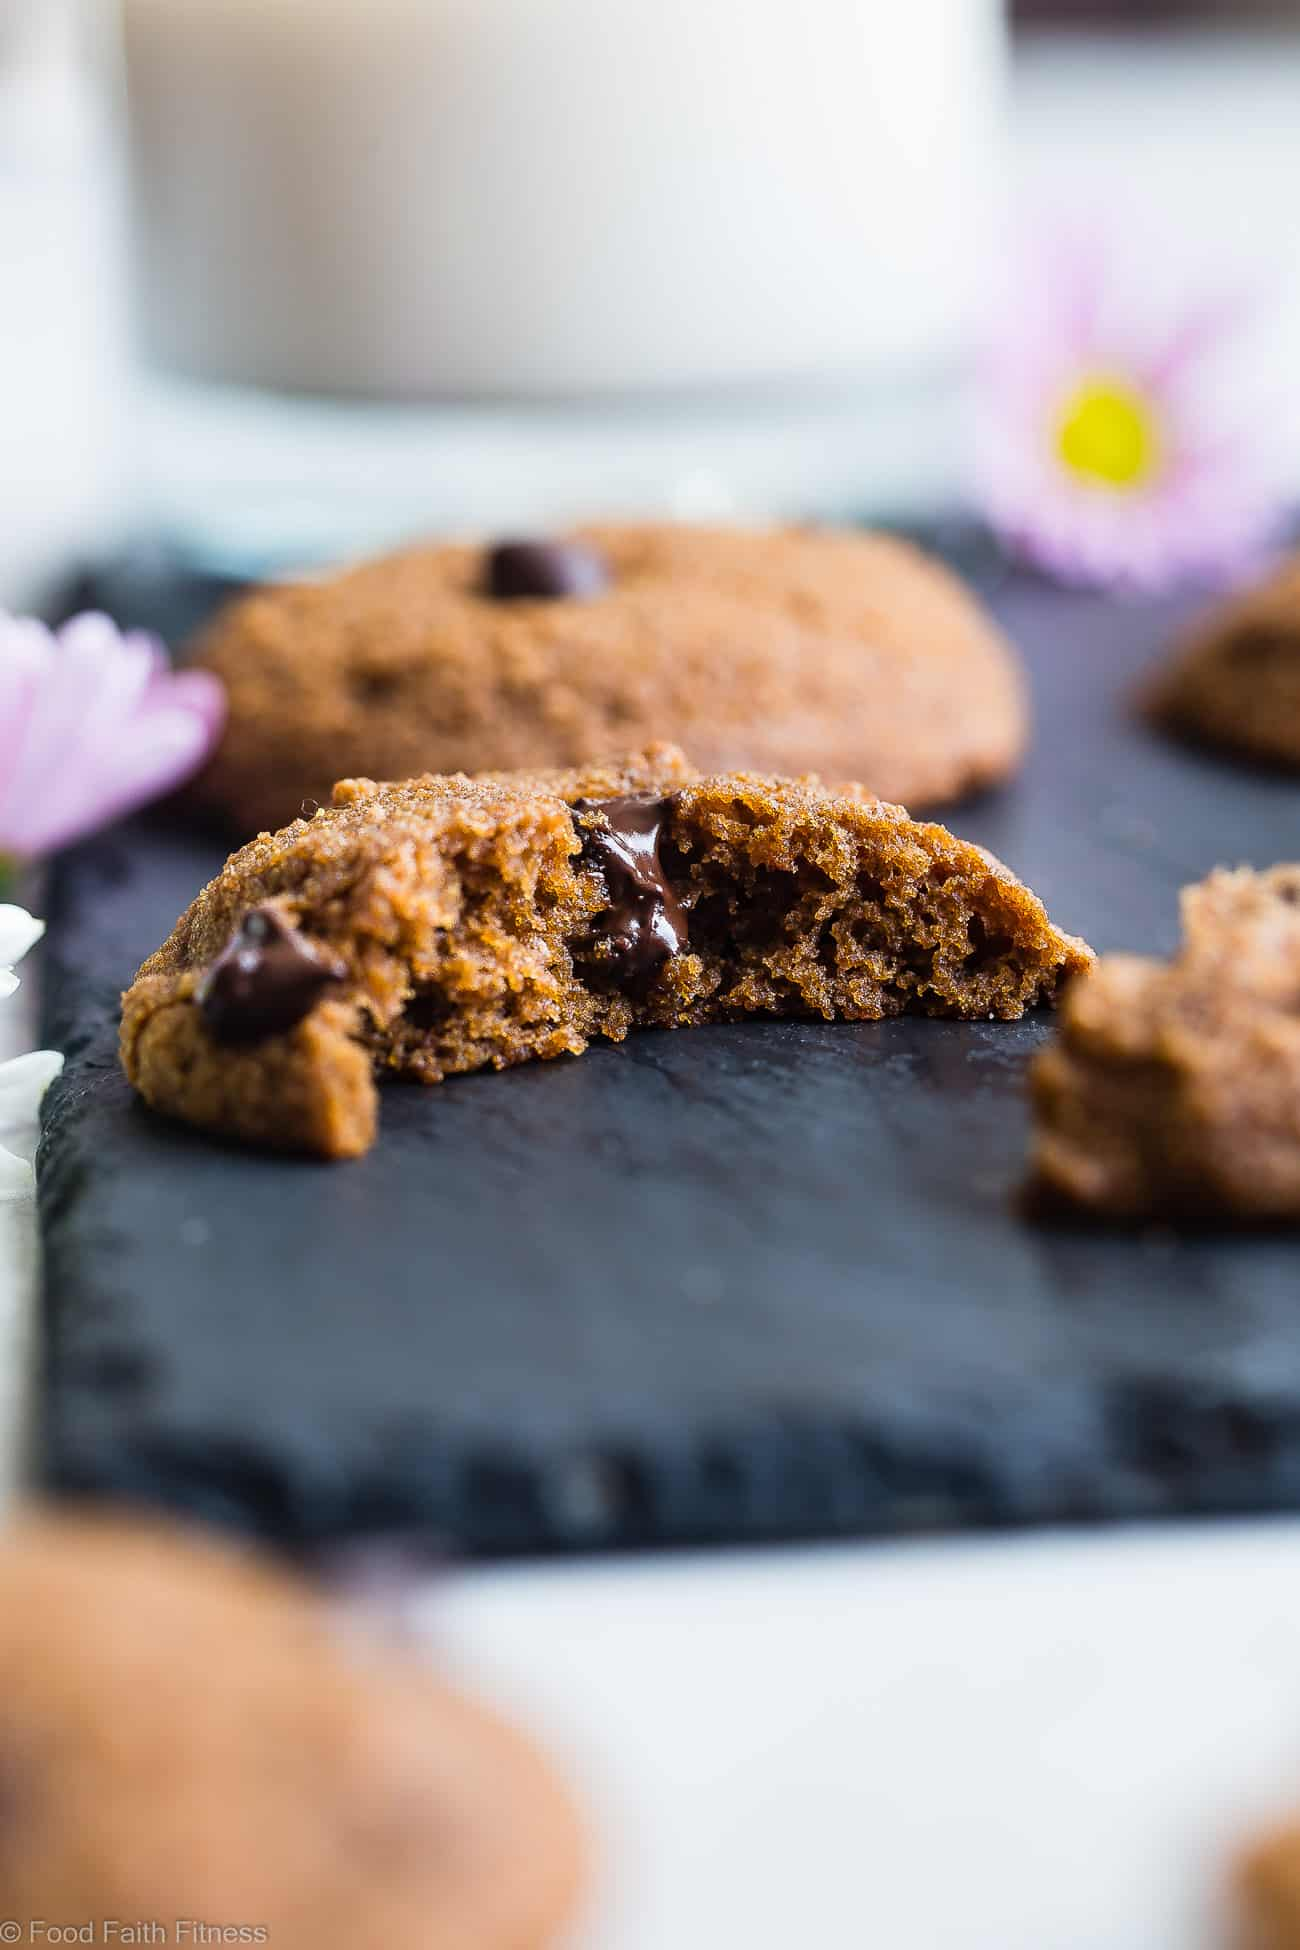 Paleo Coconut Flour Chocolate Chip Cookies -These EASYpaleo friendly cookies are buttery, soft, chewy and SO rich and chocolaty! You won't believe they are gluten, grain and refined sugar free! | Foodfaithfitness.com | @FoodFaithFit